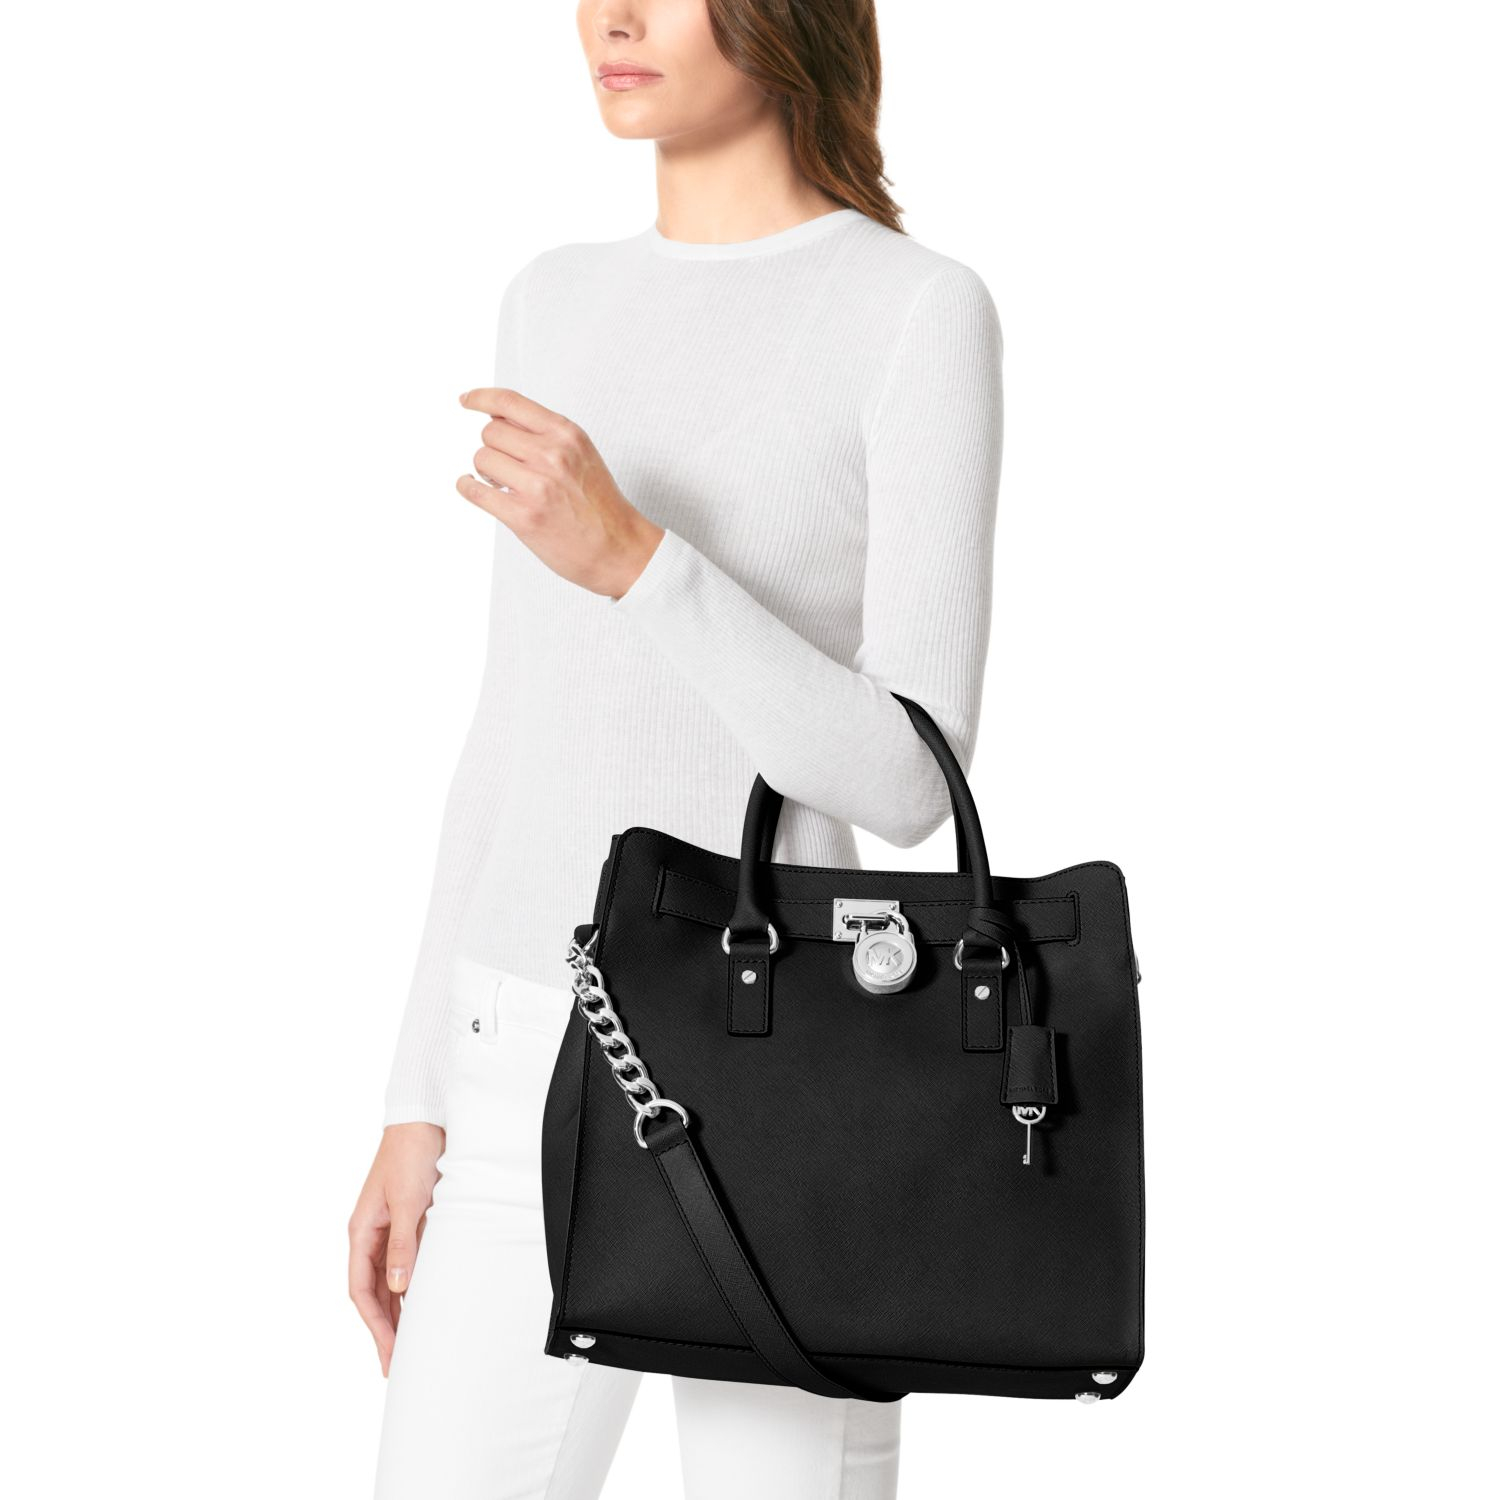 3d7a2b08307a Lyst - Michael Kors Hamilton Saffiano Leather Large Tote in Black